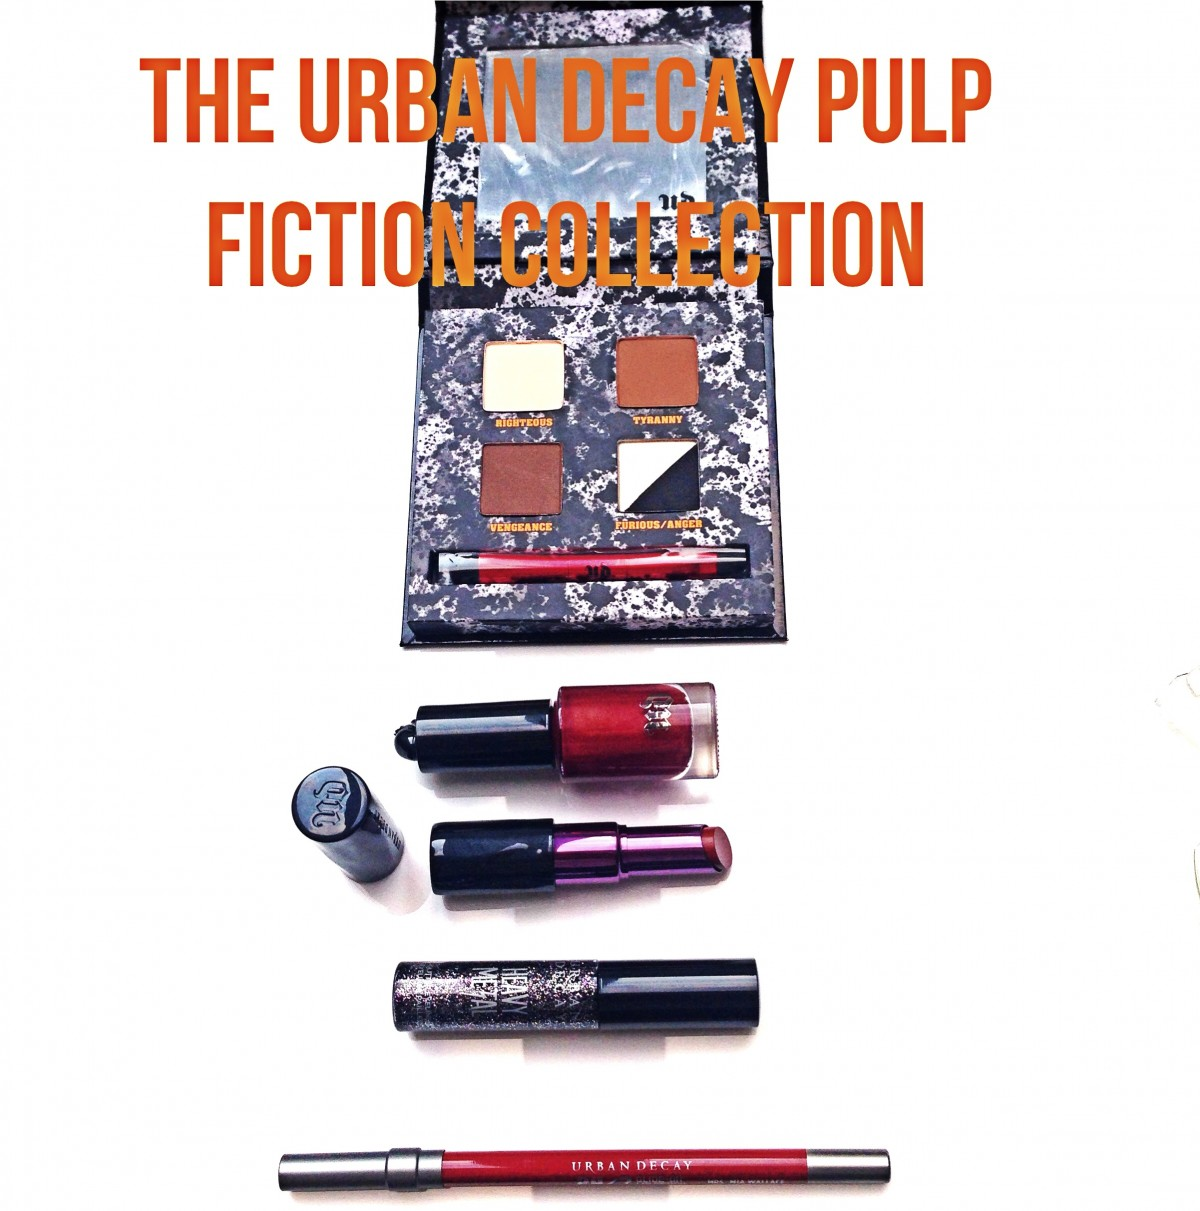 Be Cool, Honey Bunny: The Urban Decay Limited Edition Pulp Fiction Collection Is Here